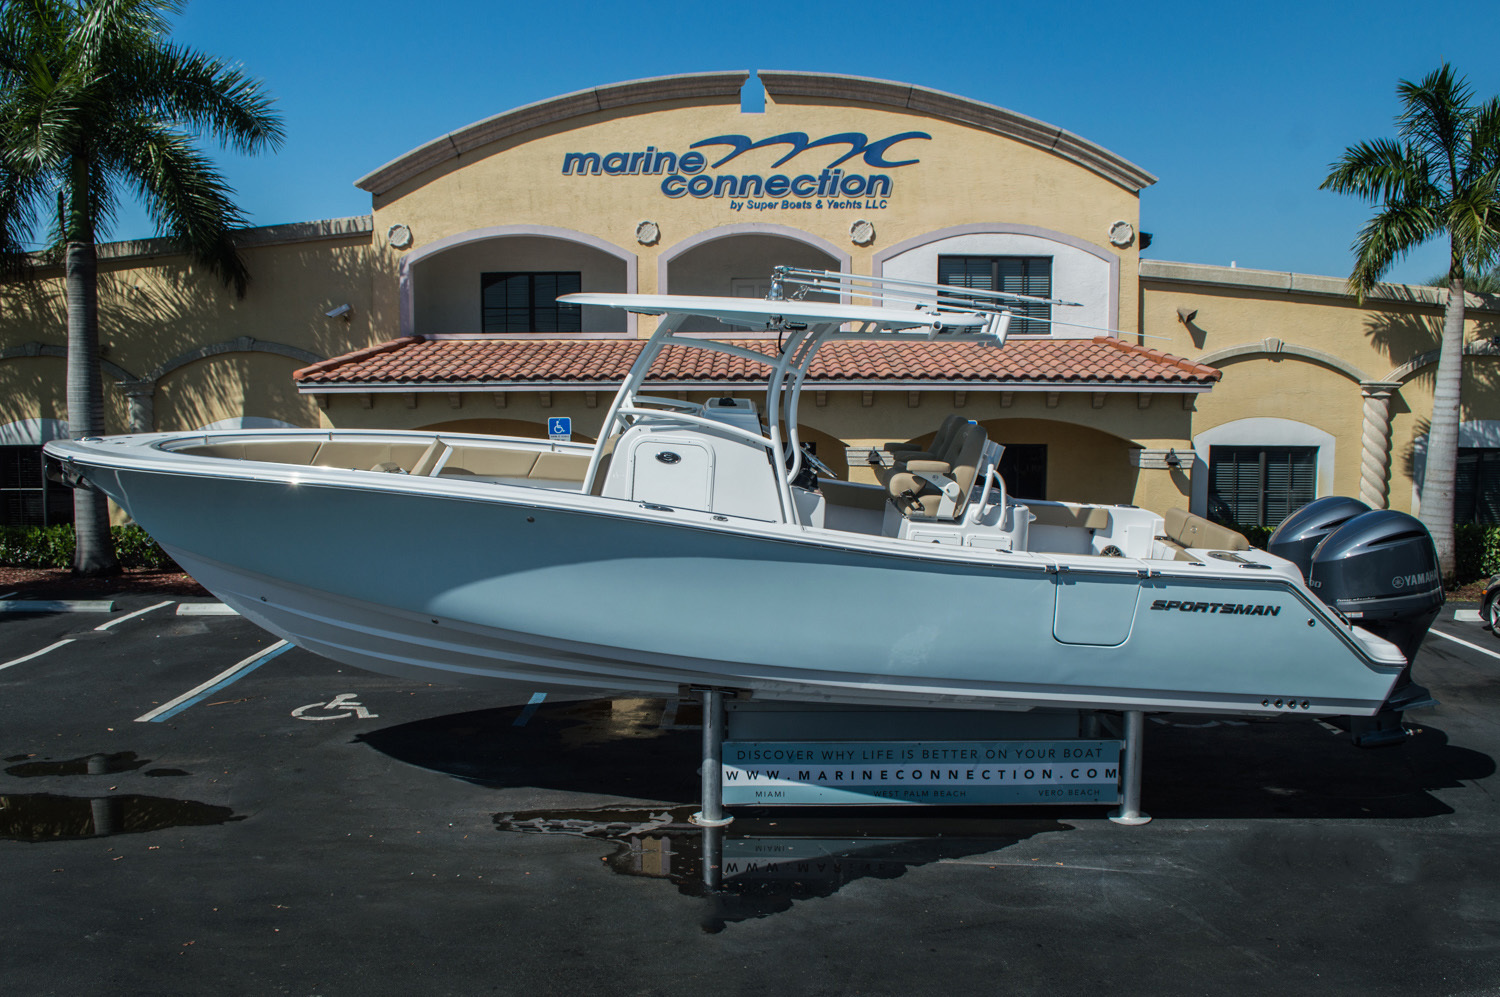 New 2016 sportsman open 312 center console boat for sale for Yamaha dealer miami